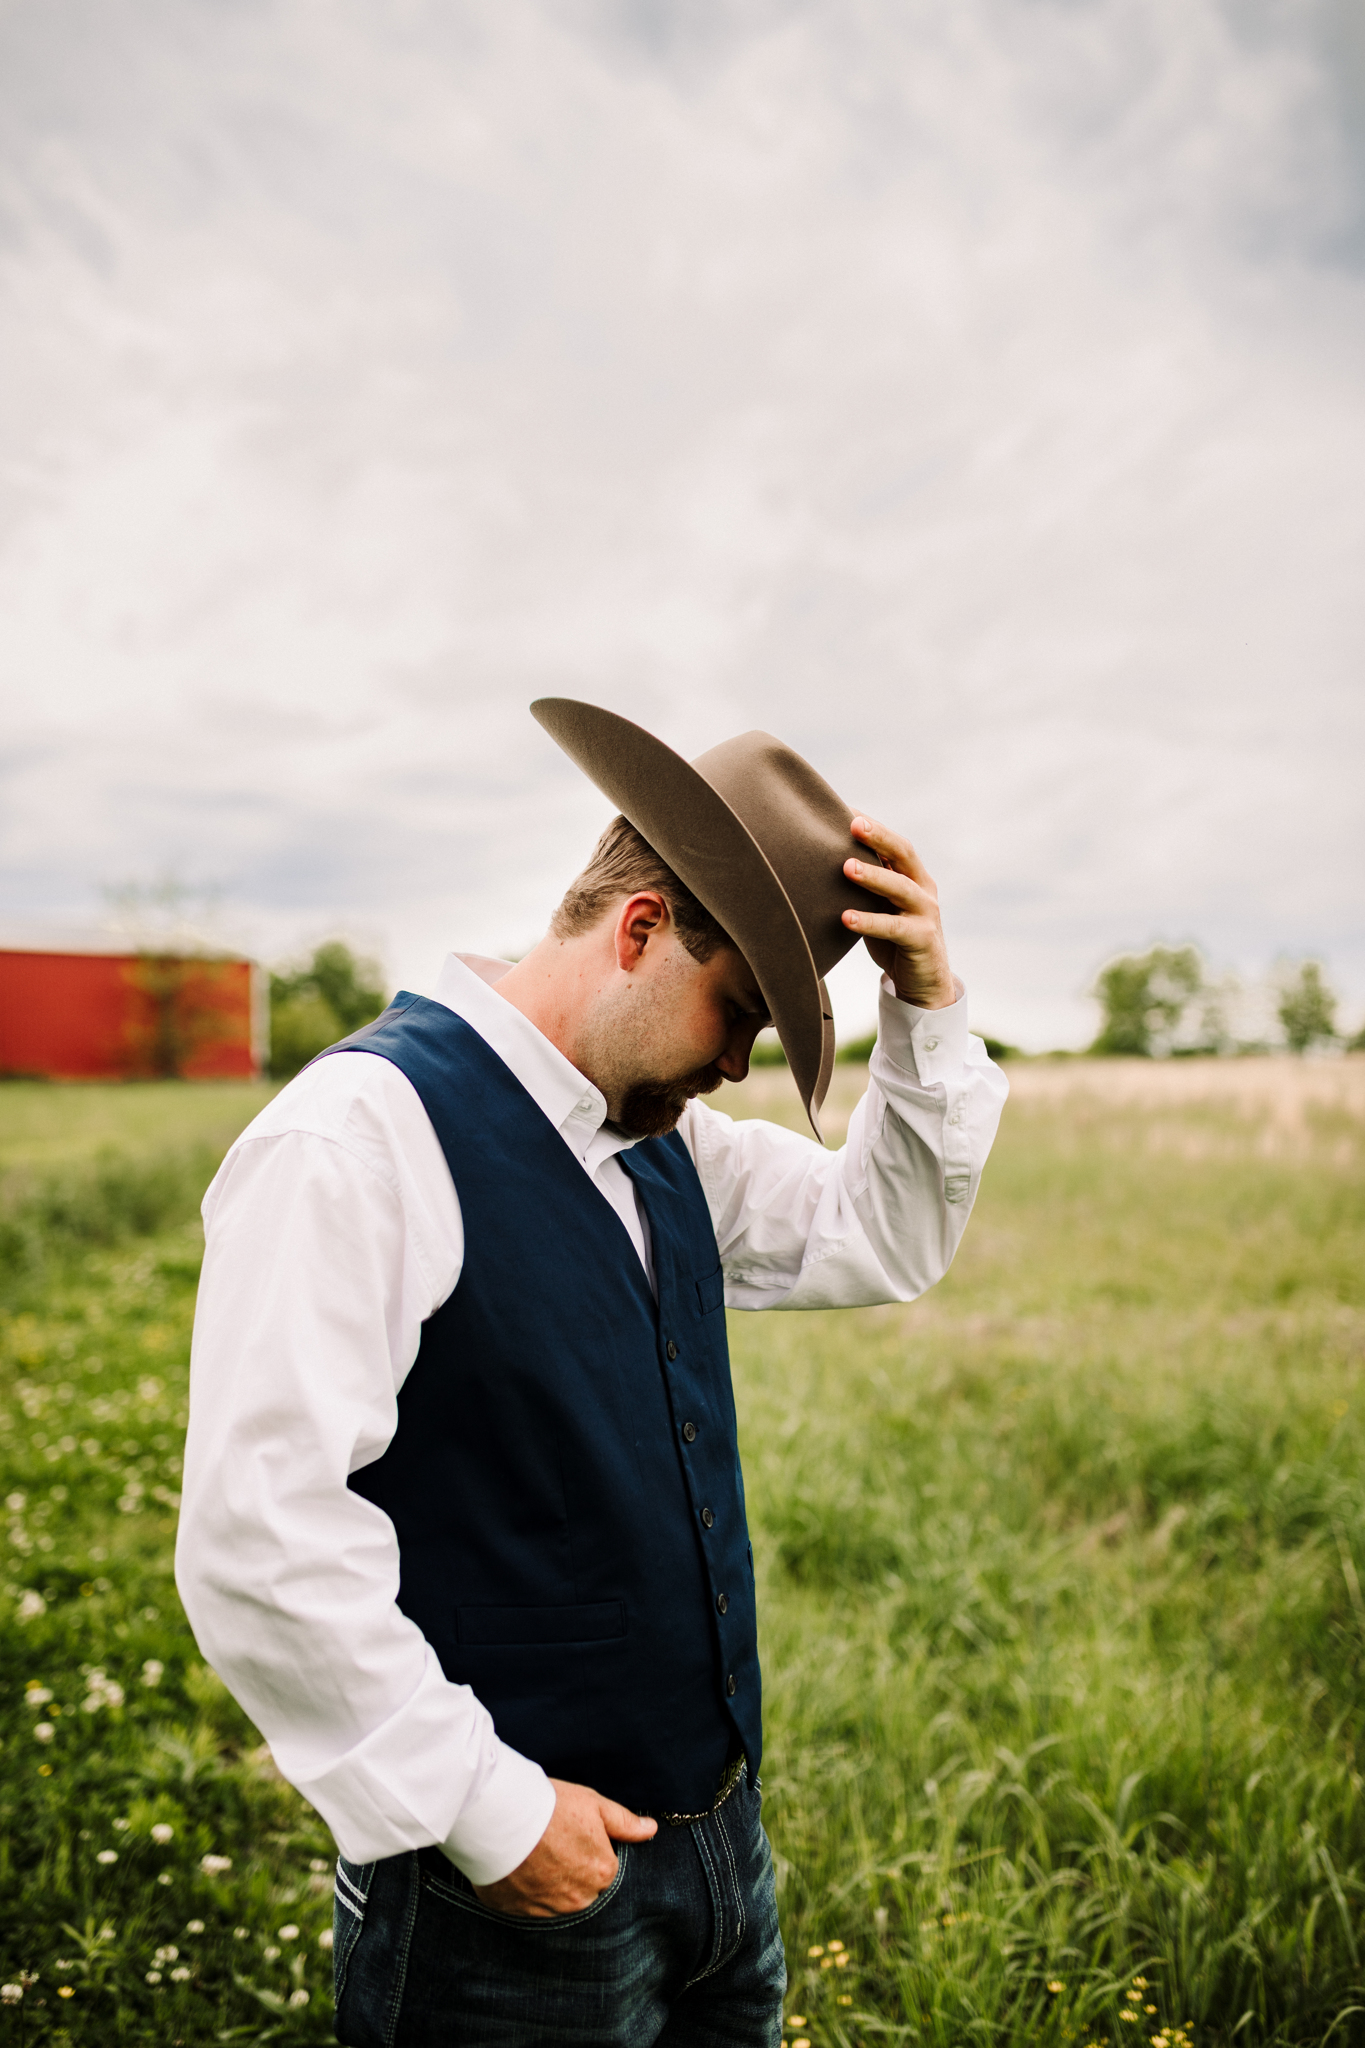 Billie-Shaye Style Wedding Photography featured on Nashville Bride Guide